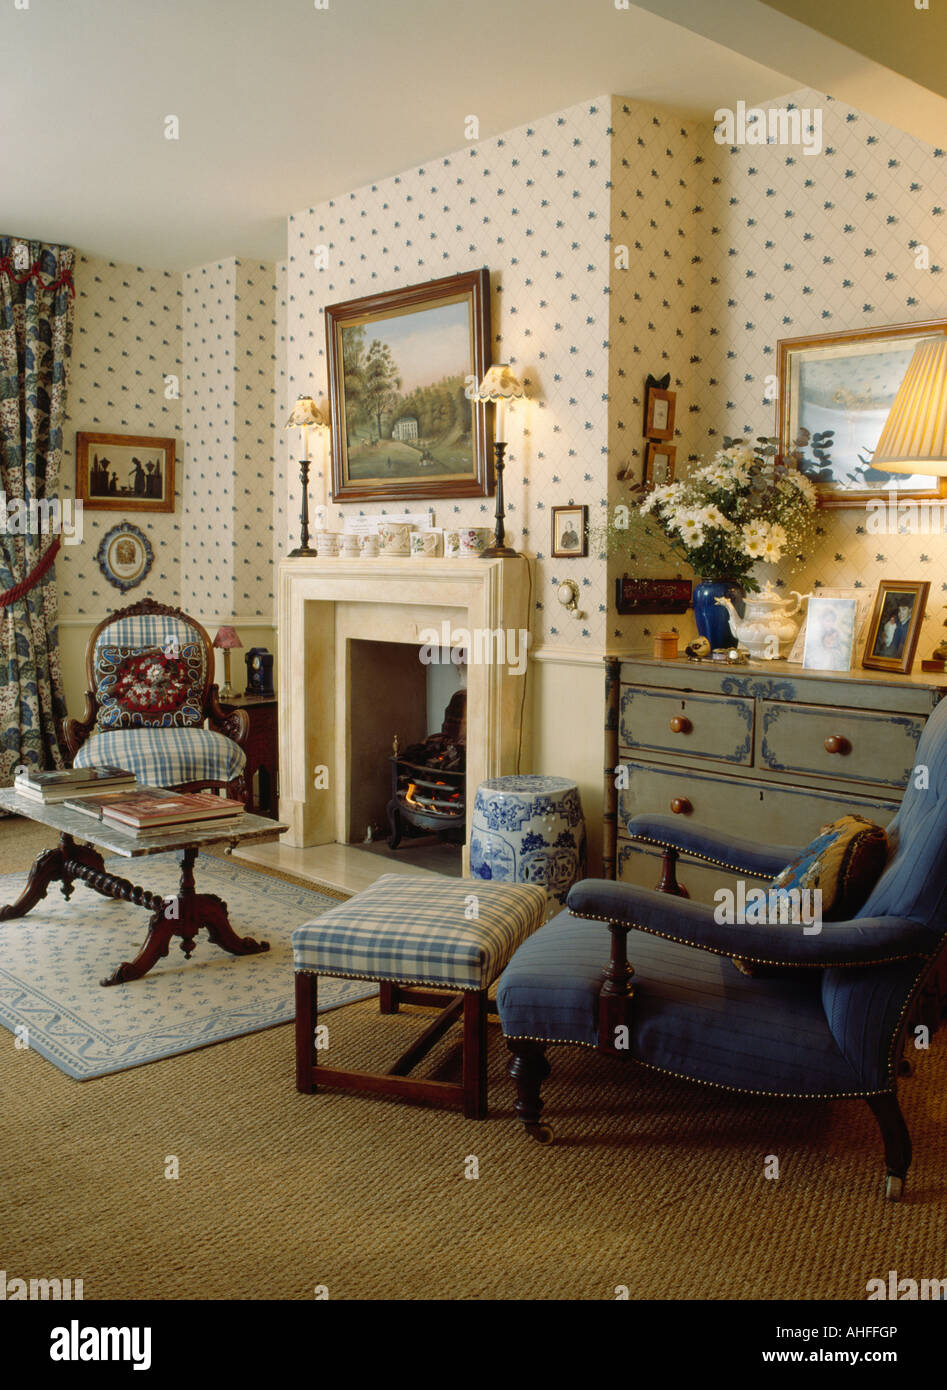 Blue armchair and checked footstool in living room with for Footstool living room